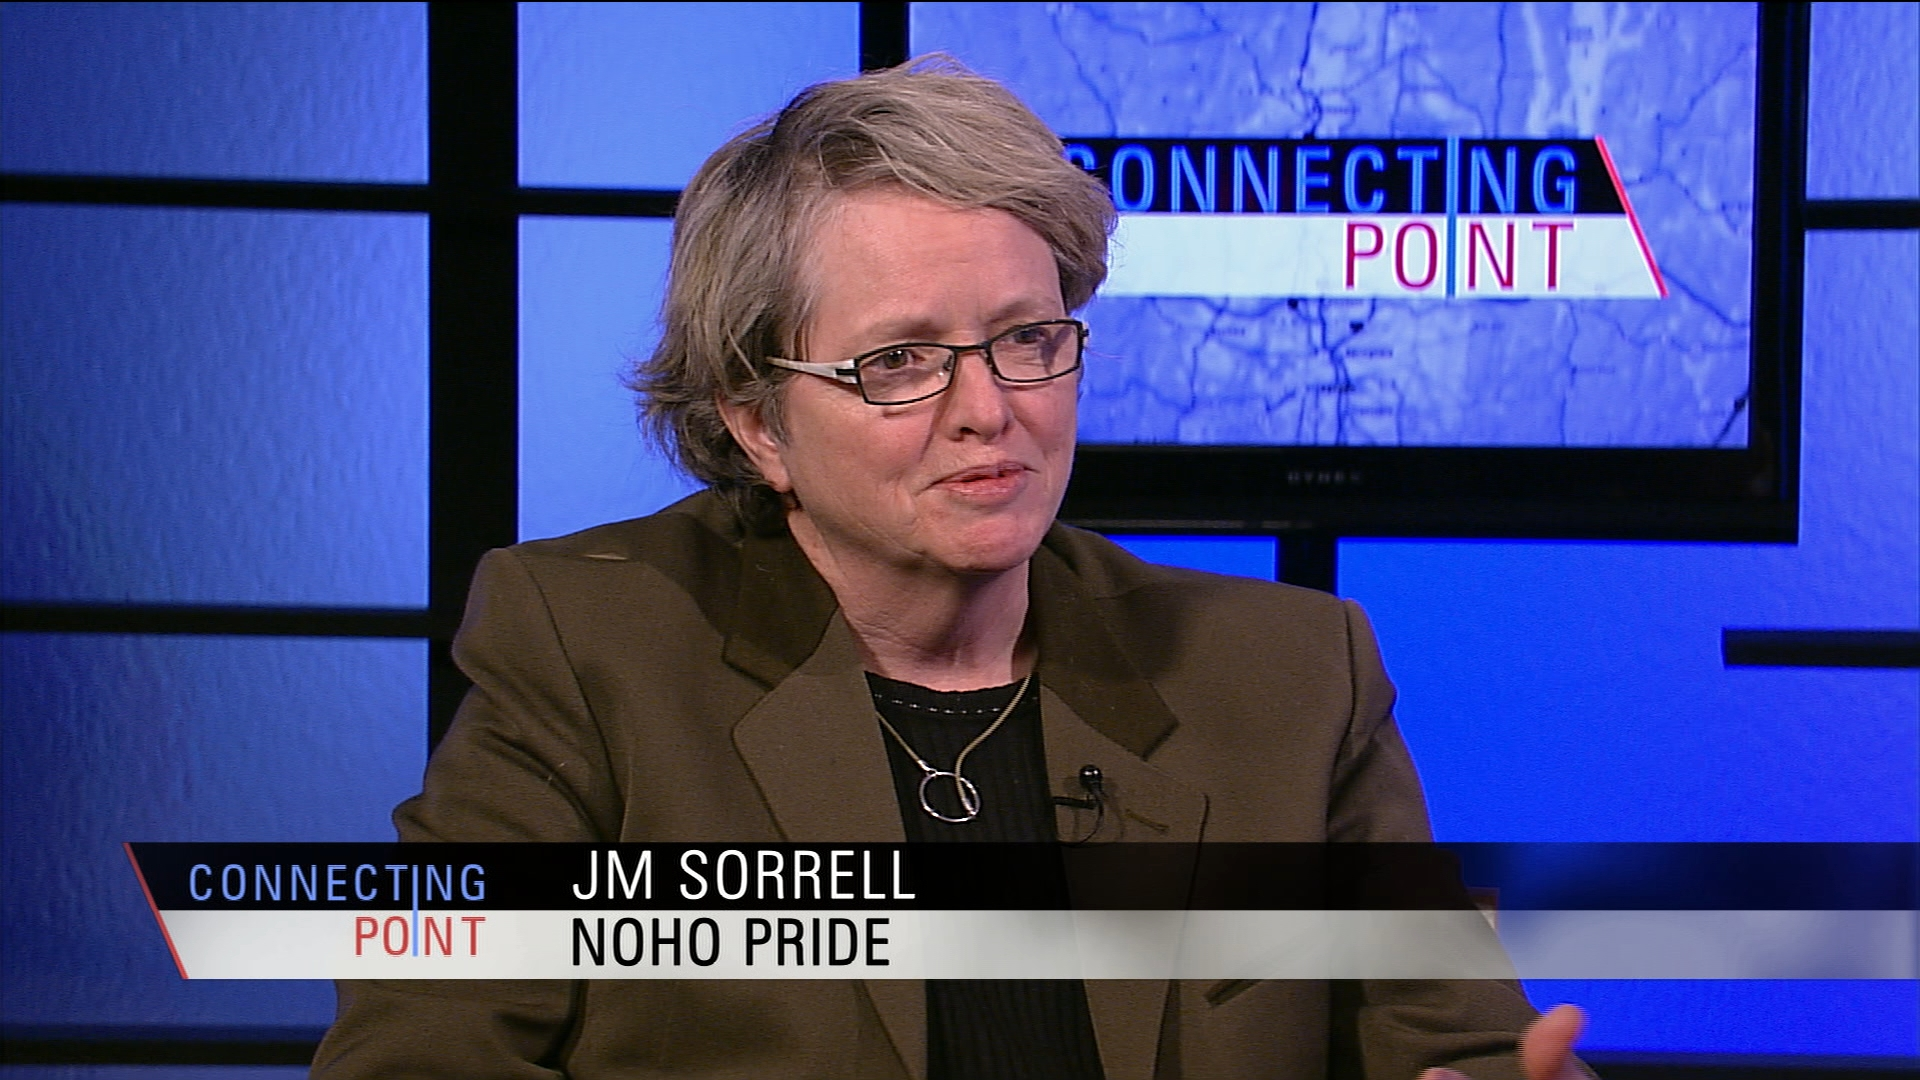 Spokesperson J.M. Sorrell talks about the upcoming 35th Annual NoHo Pride Parade and Event taking place May 6, 2016.